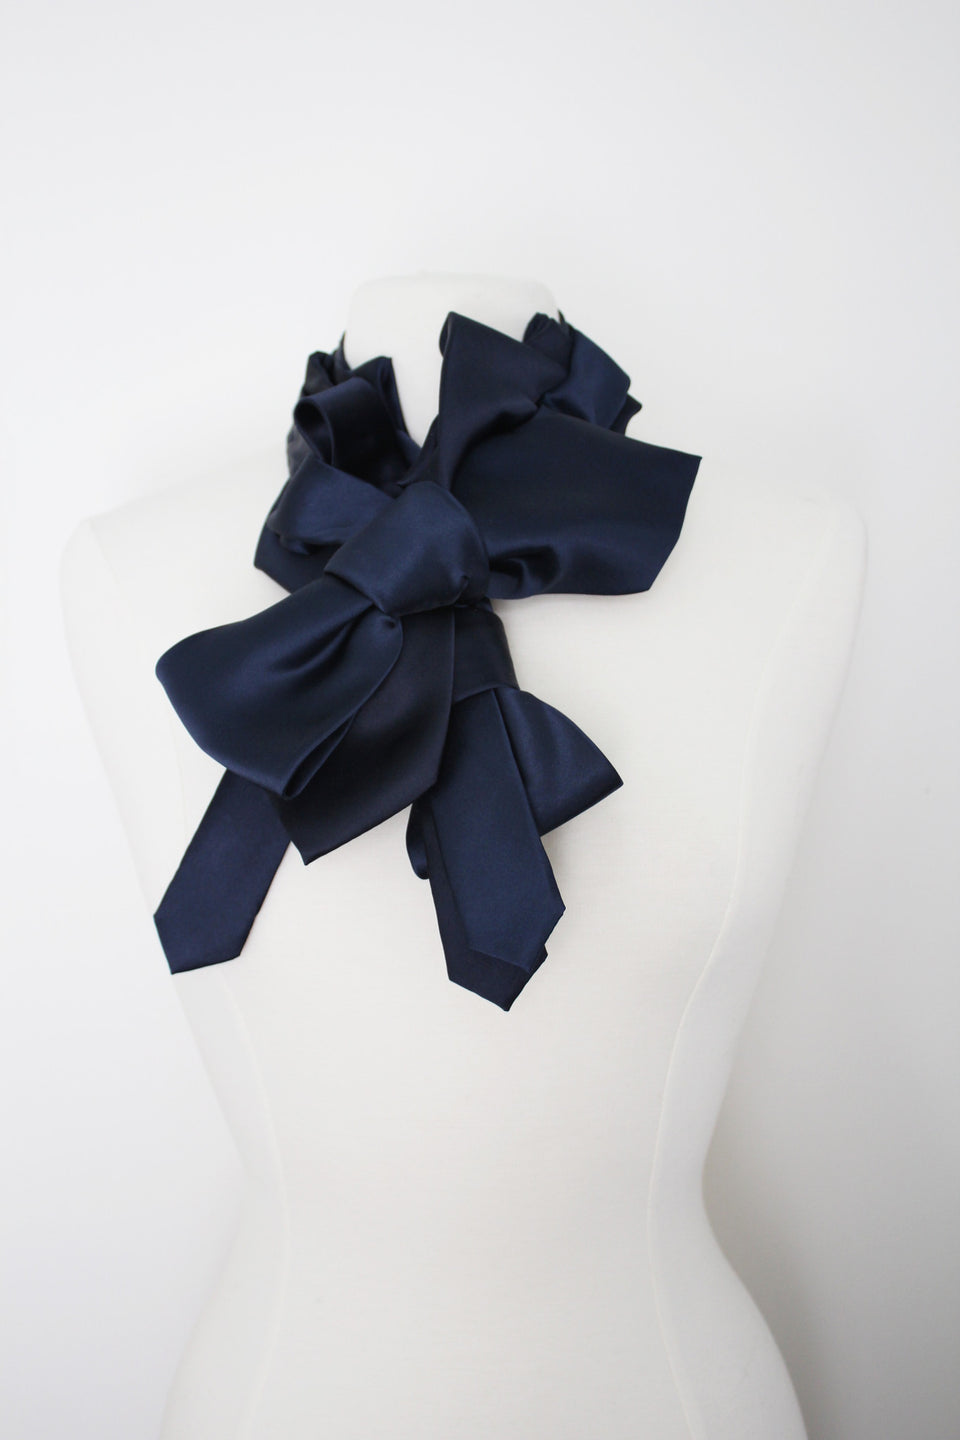 Handmade-modermaker-curated-couture-ascot-ruffled-cravat-neckite-accessory-victoran-bow-noir-tuxedo